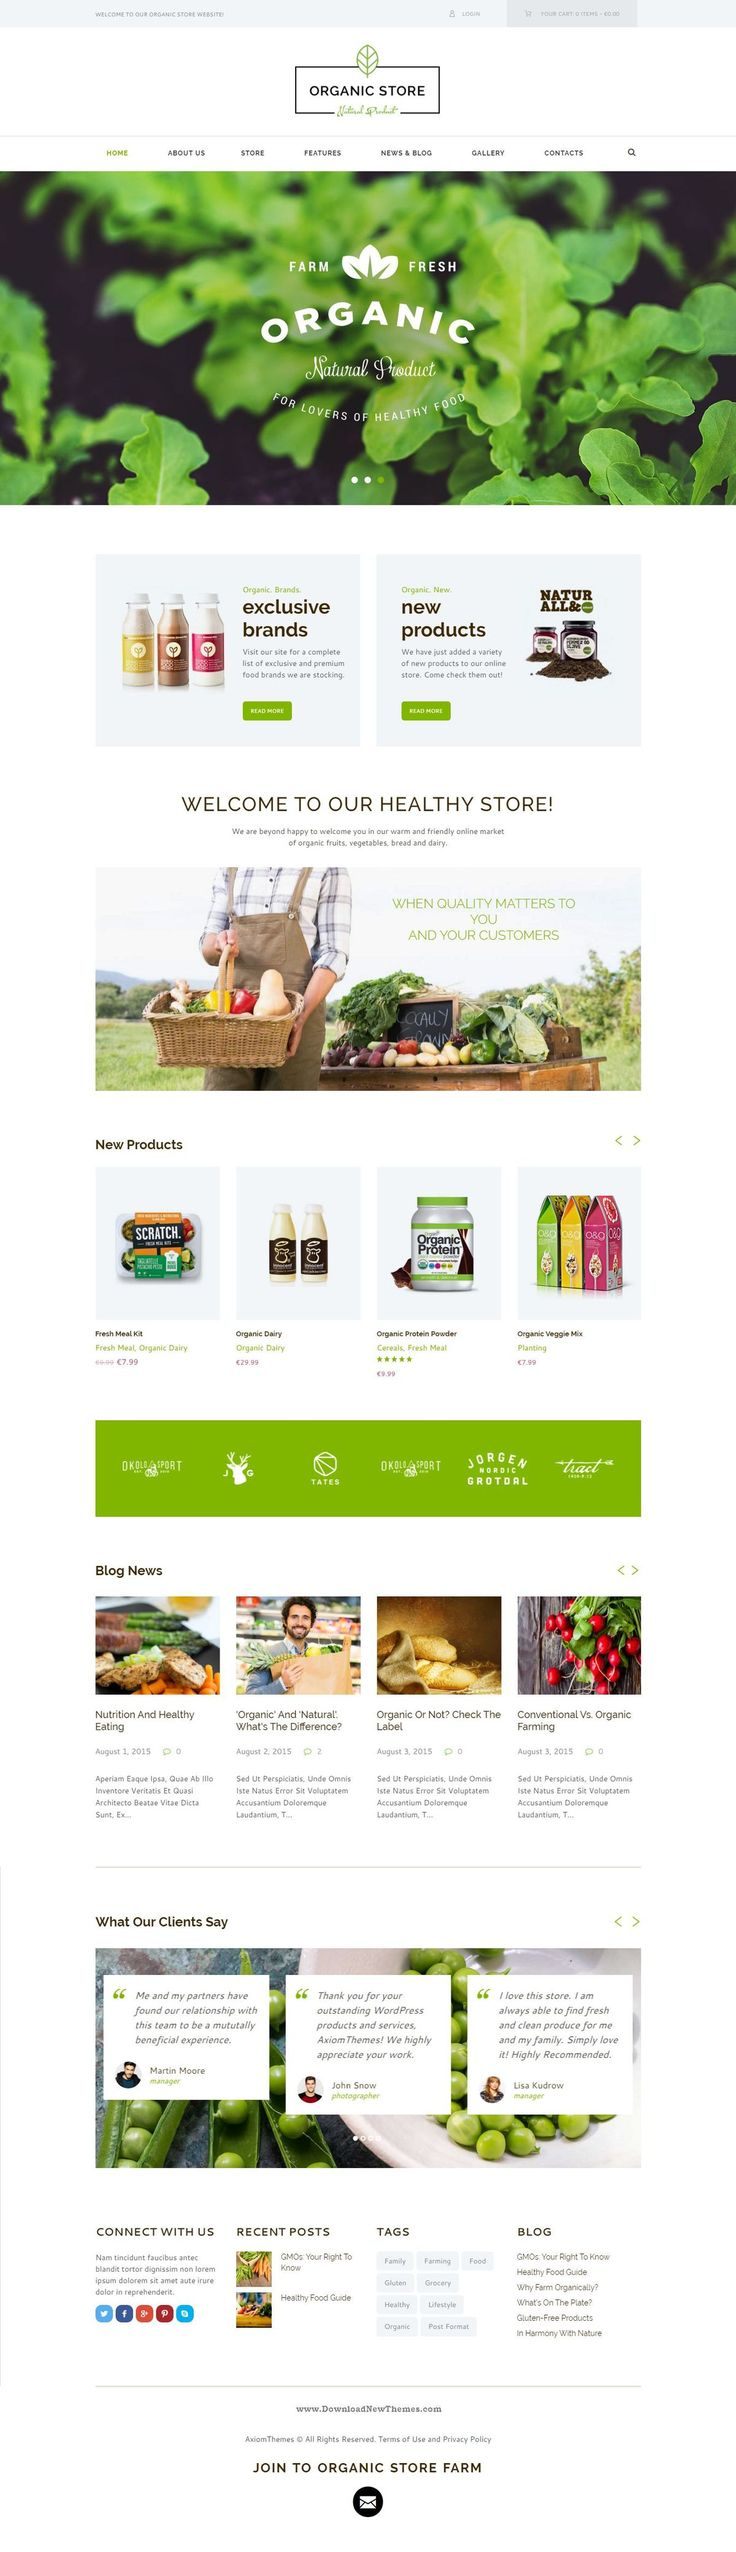 Organic store responsive WordPress Theme is a colorful design perfectly suitable for #agricultural business, agrotourism, healthy food blog, organic food shop, #organic farm, bakery – anything you want! #website Download Now➝